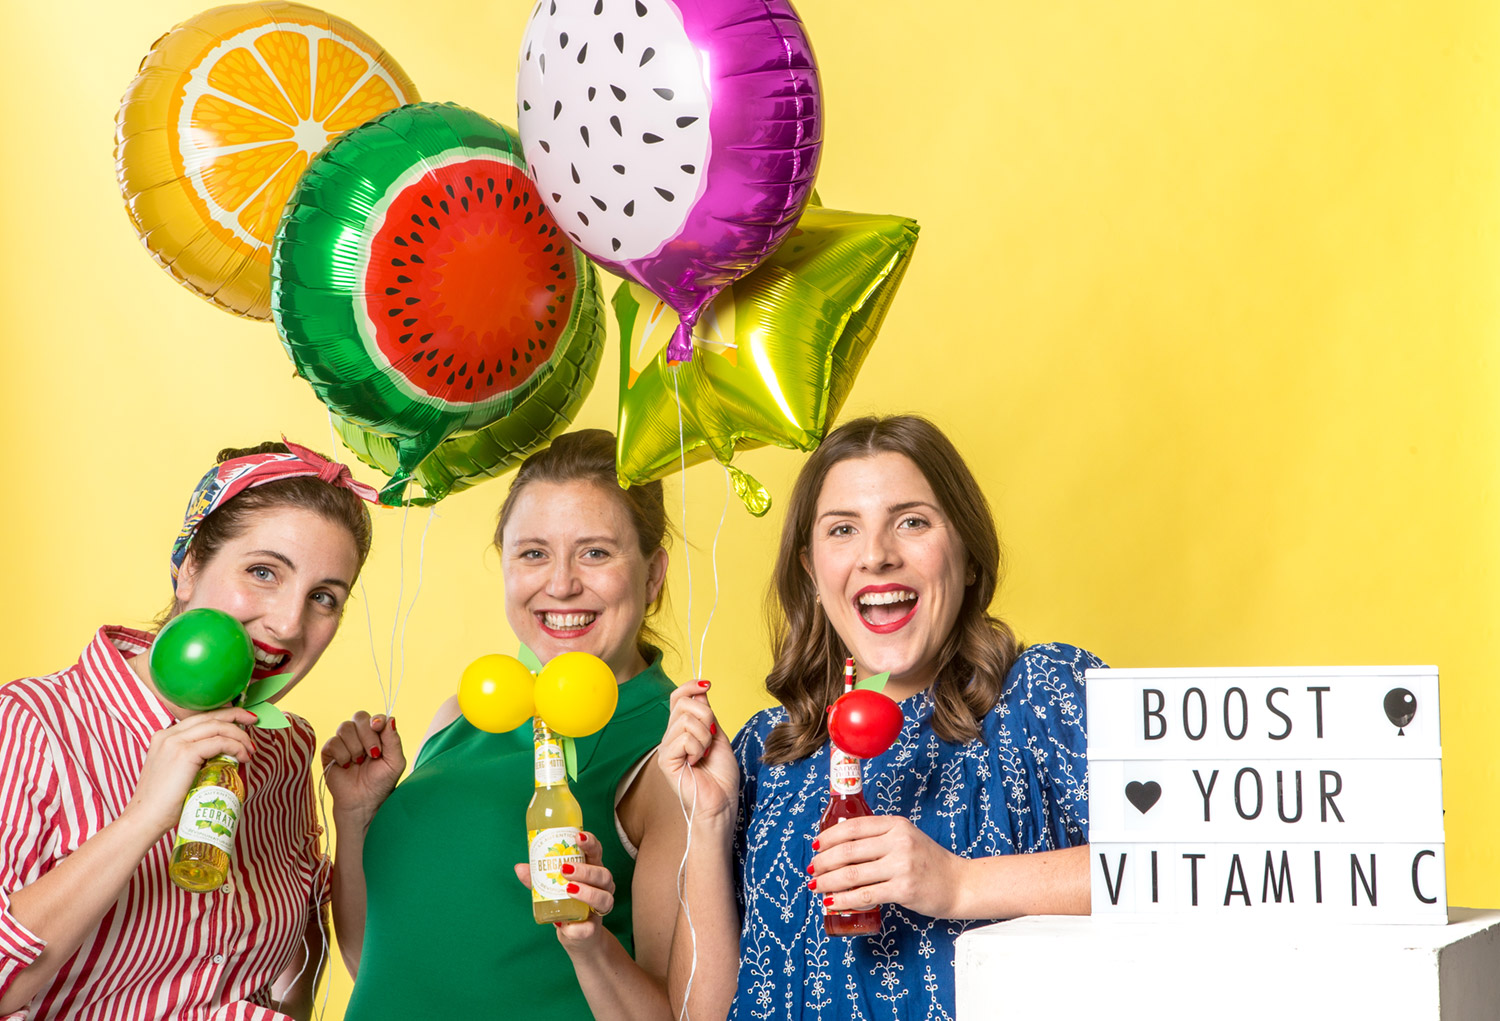 Copy of Fruktballonger vitamin injecera ditt party